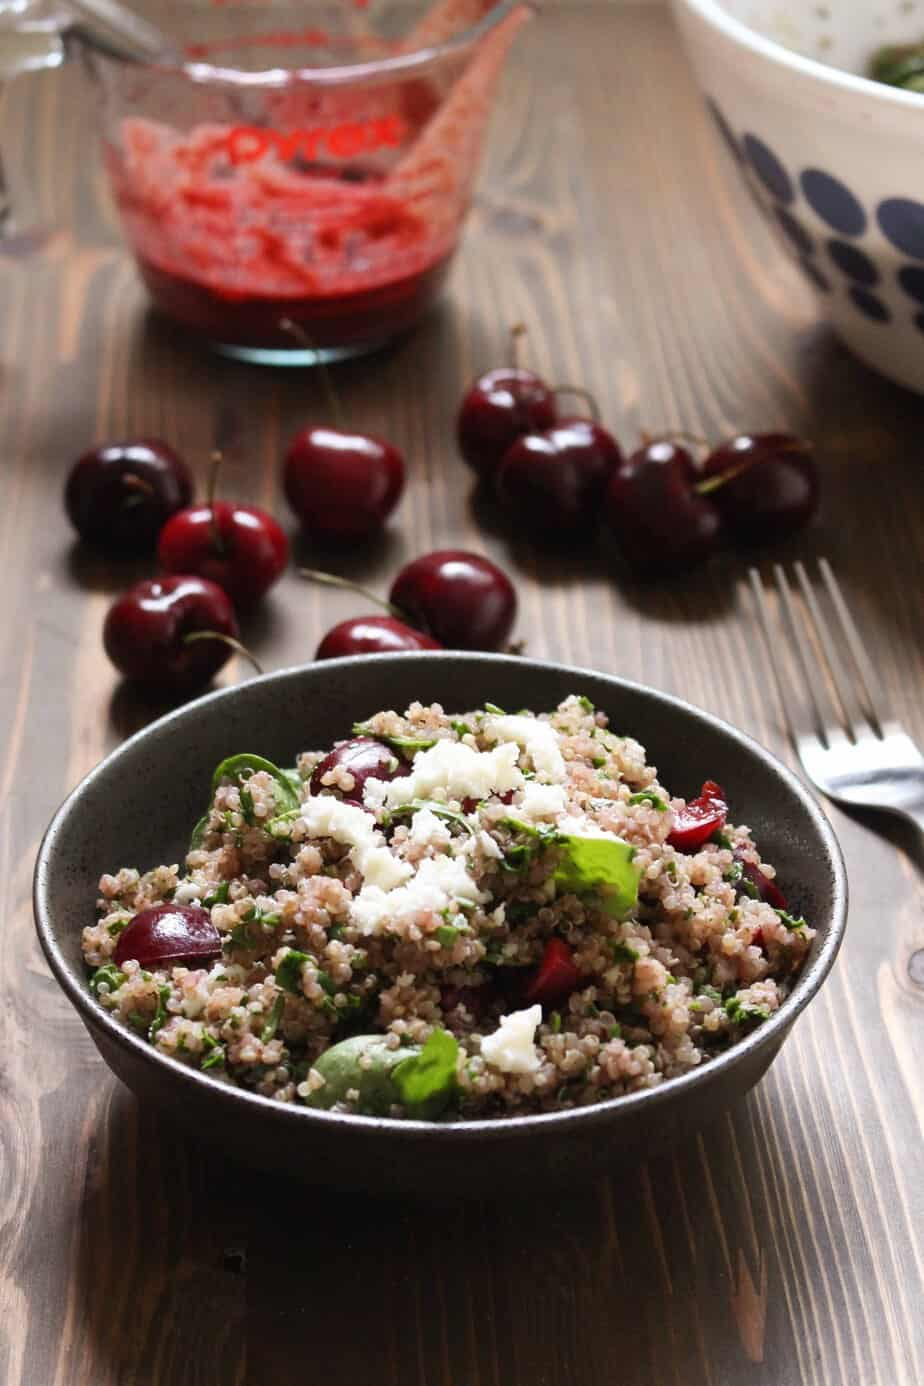 Awesome Cherry Balsamic Quinoa Salad with Spinach and Feta   Frugal Nutrition